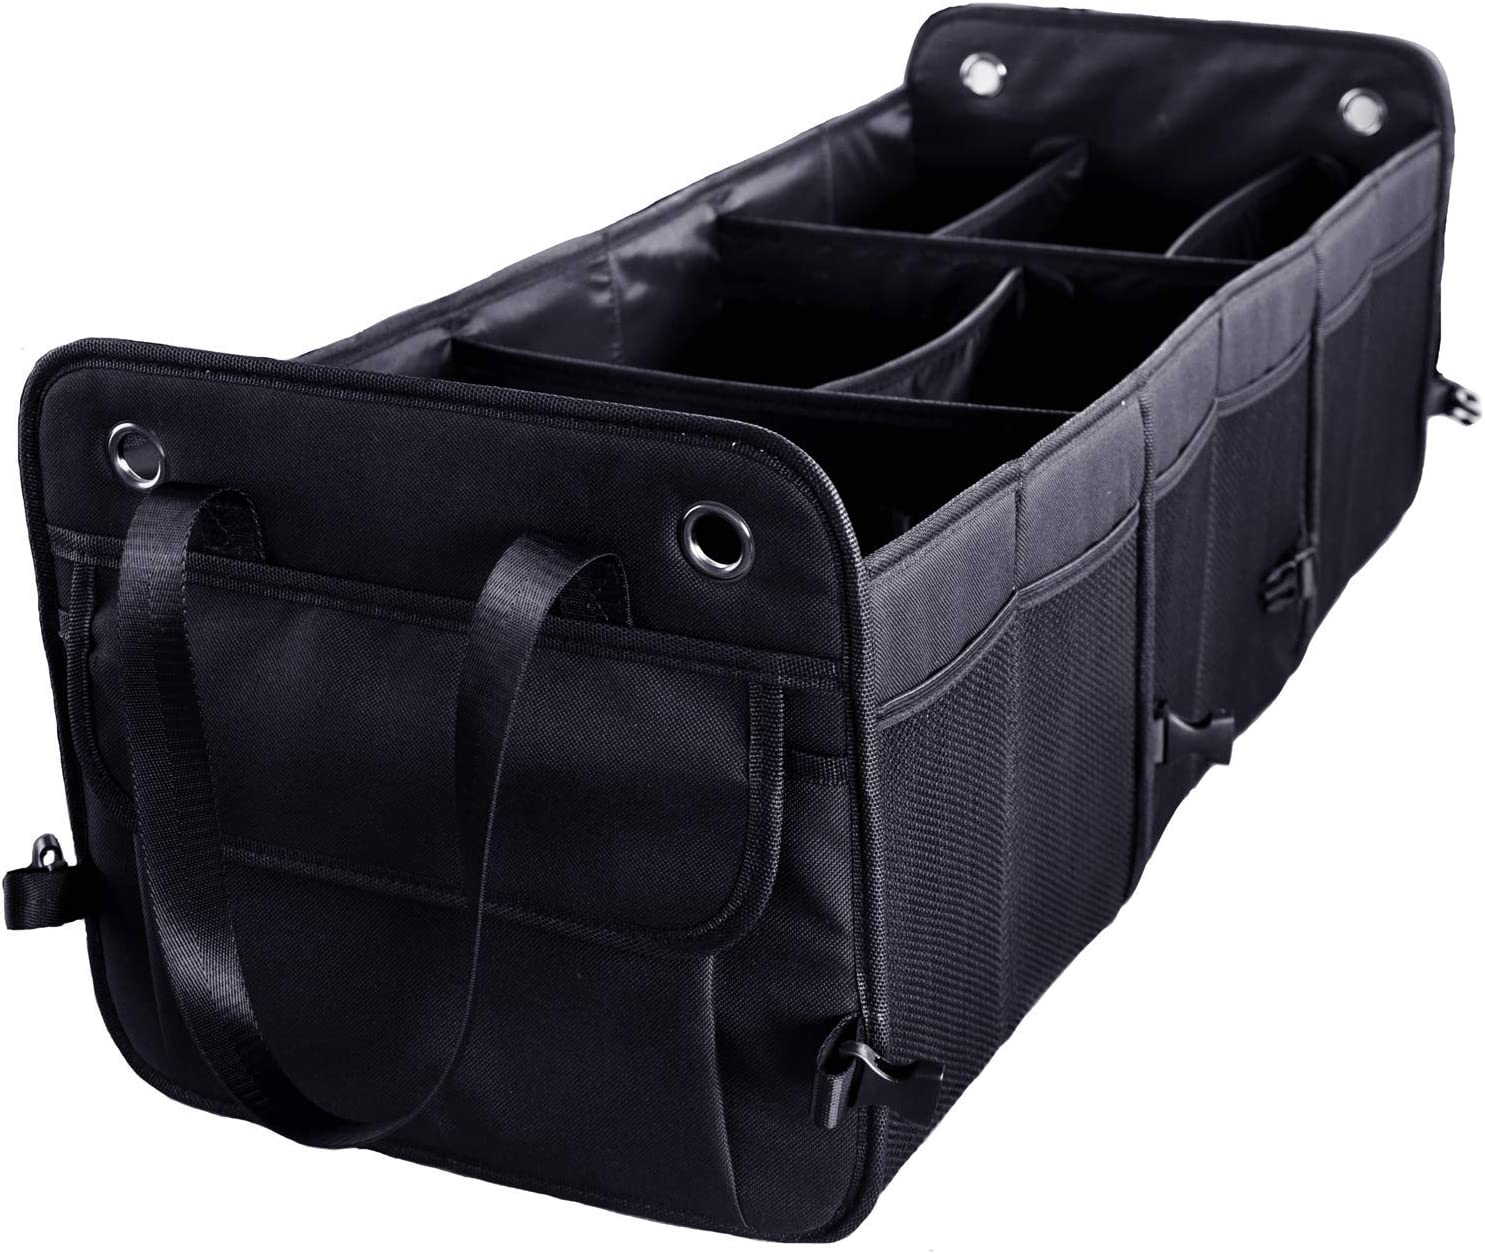 Cutequeen Black Trunk Organizer Back Seat Protector Storage Organizer Multi Compartments Collapsible Portable for SUV Car Truck Auto